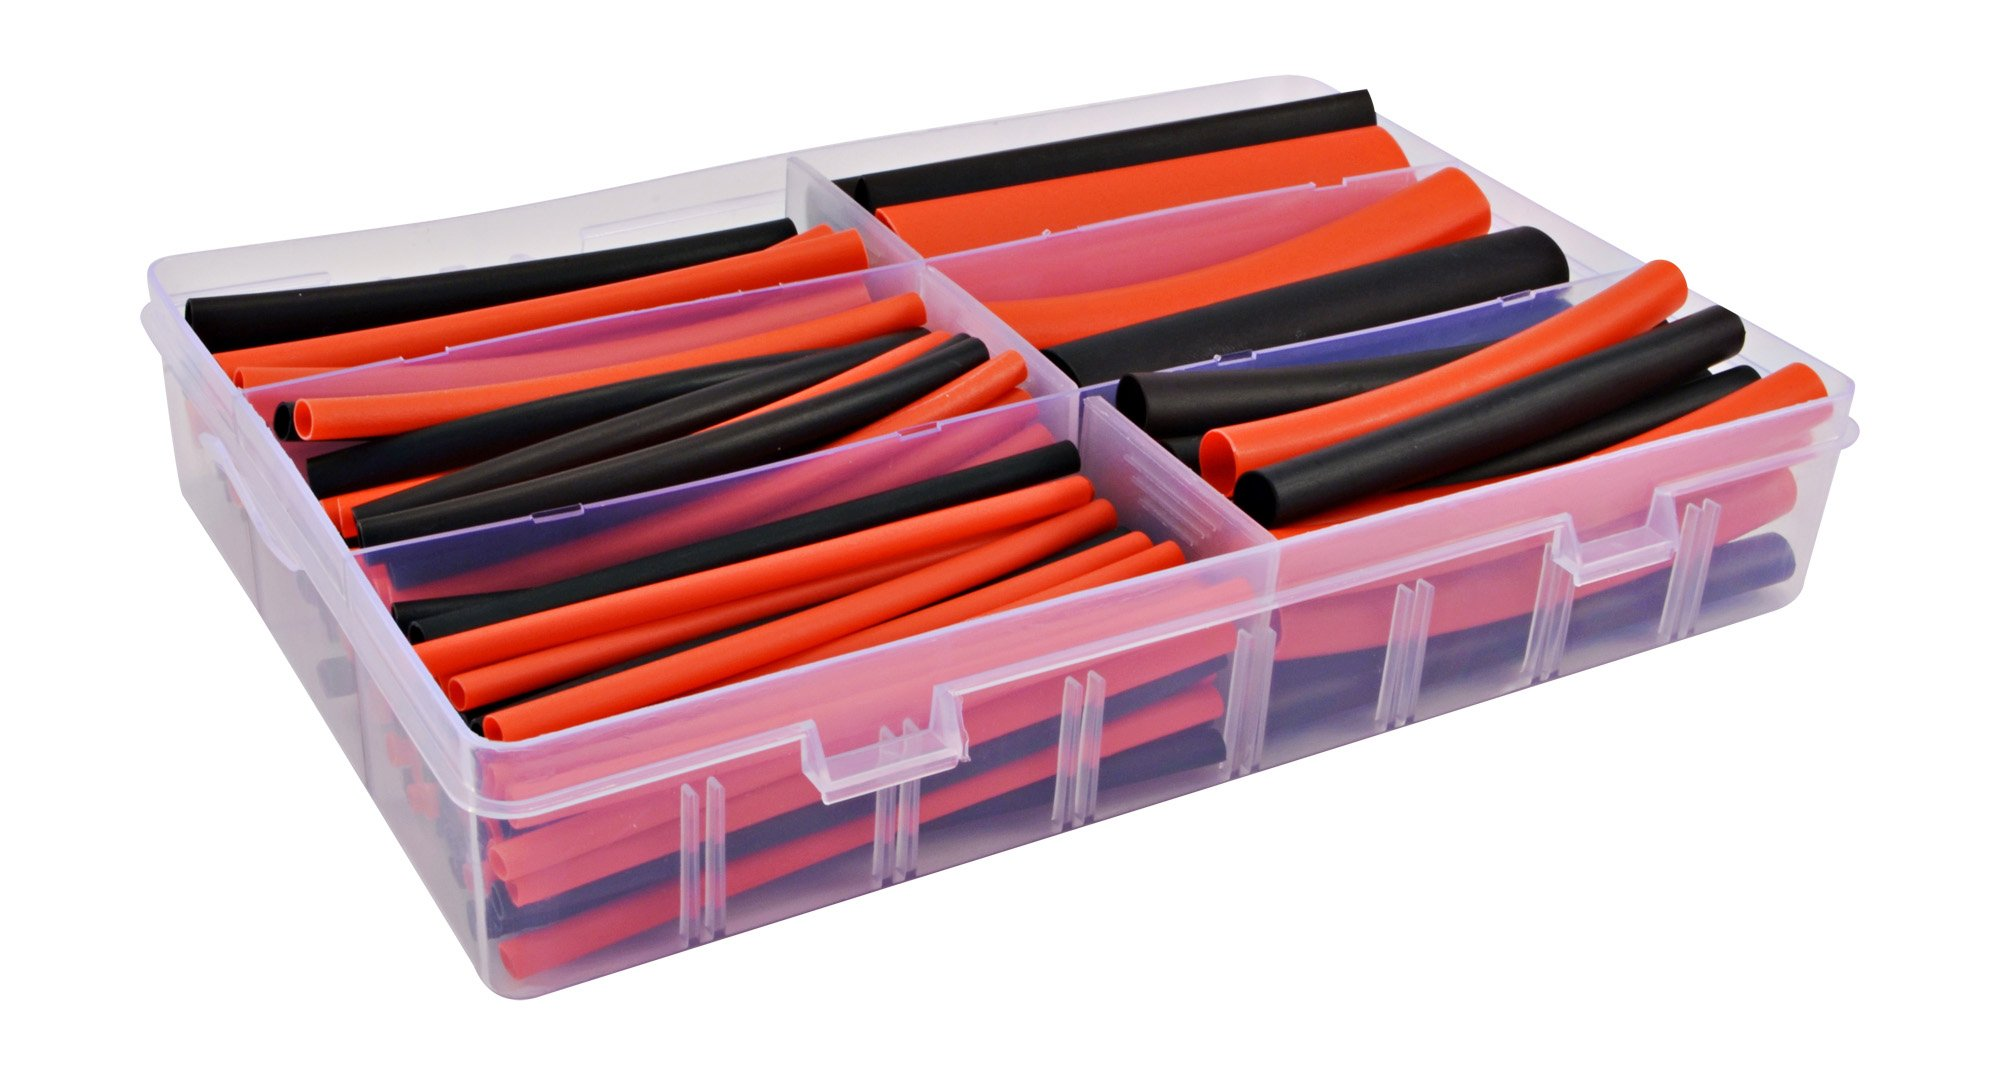 130 PC. Dual Wall Adhesive Marine Heat Shrink Kit - 3:1 Shrink Ratio - Black and Red by Simple Electric Solutions (Image #1)